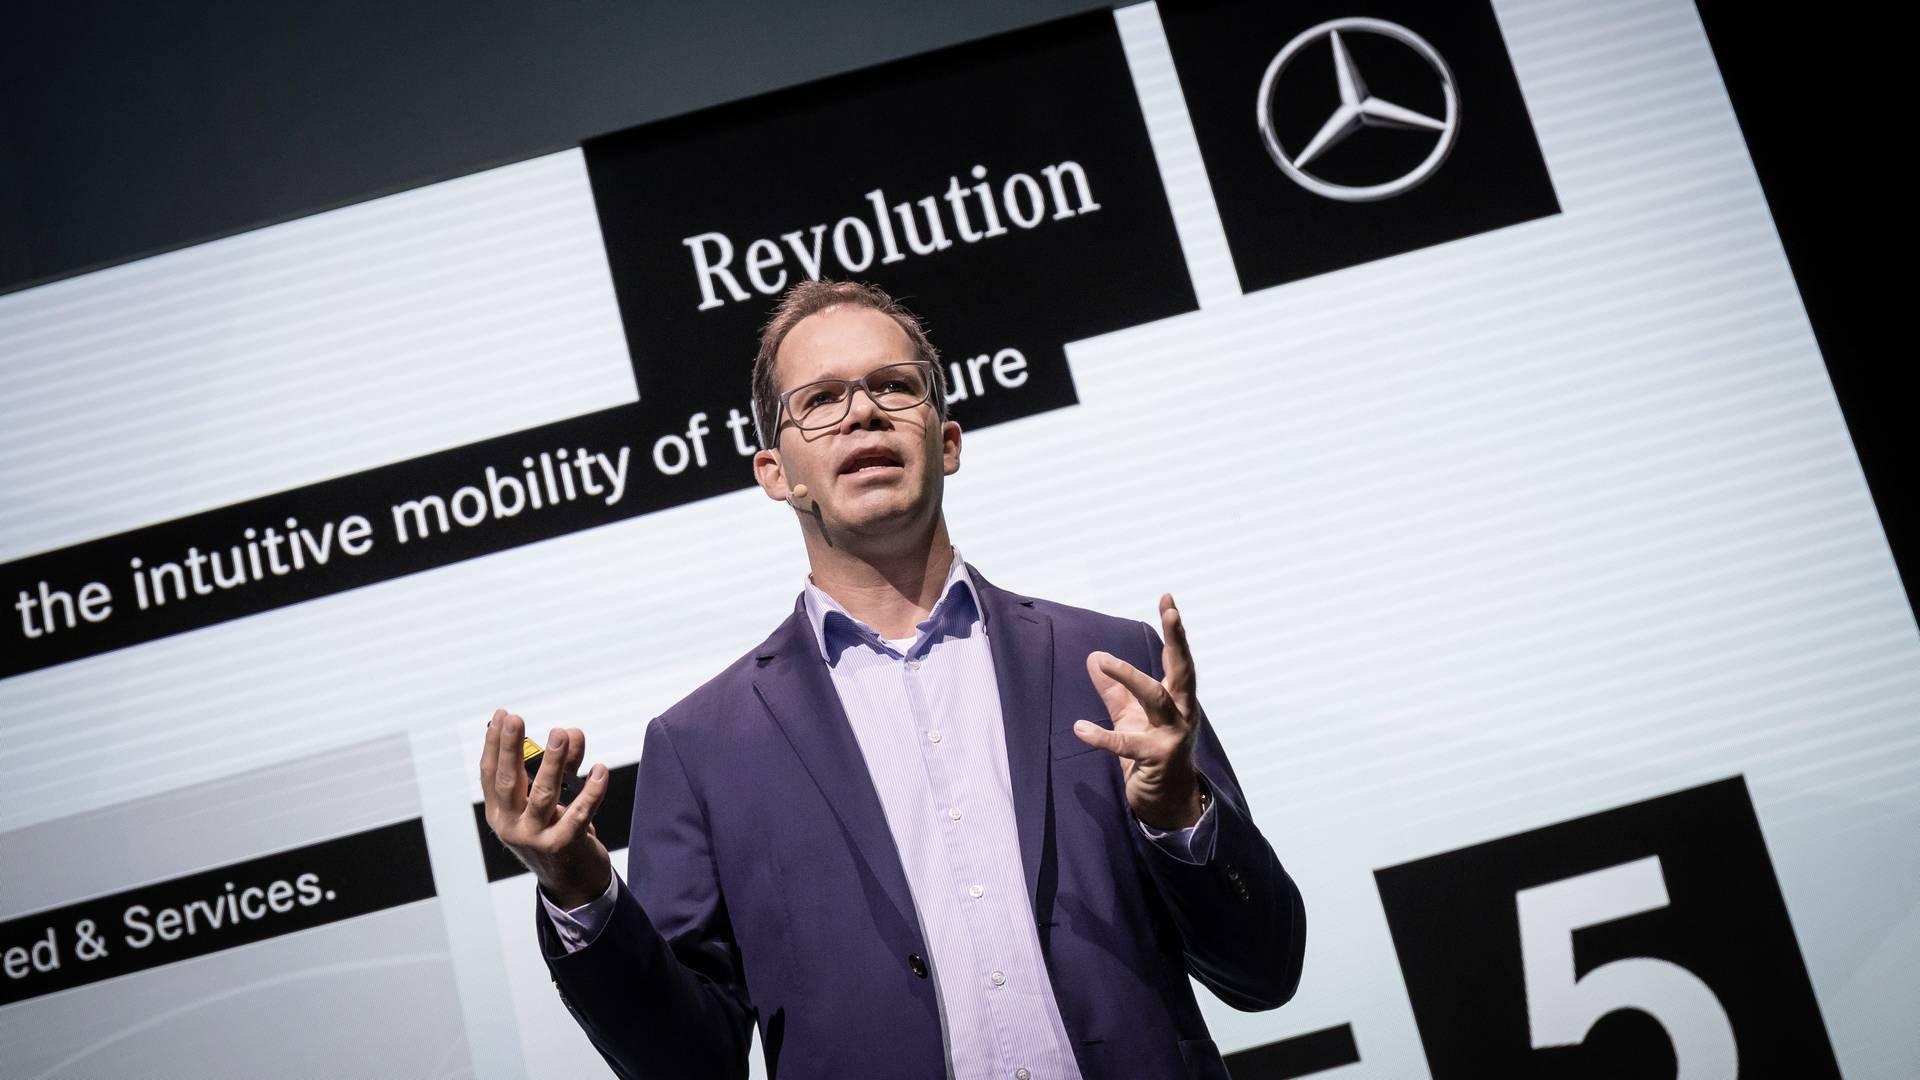 E-Mobility Won't be Cheap: An Interview with Daimler's Wilko Stark